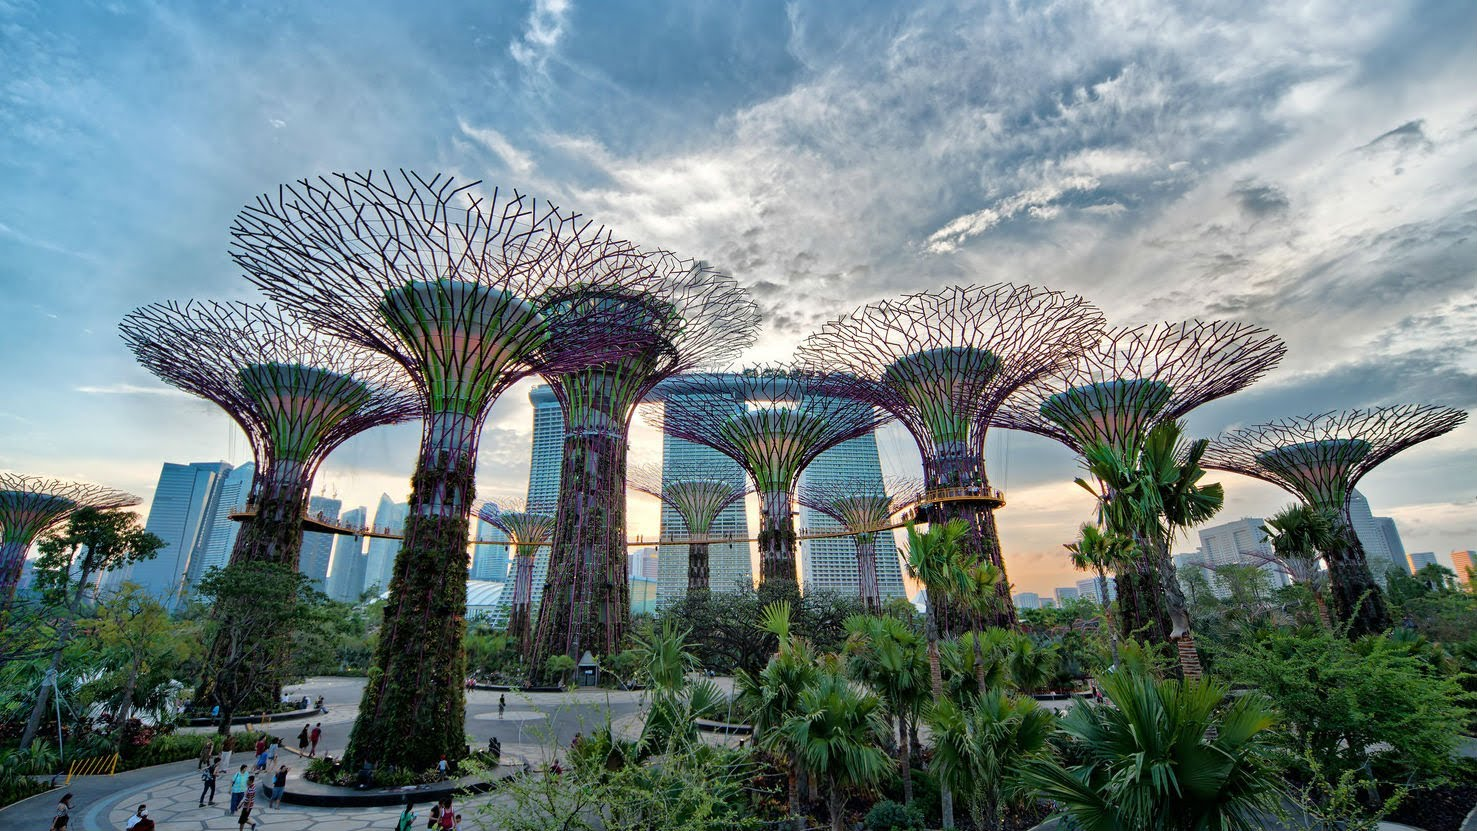 Beary Best Gardens by the Bay